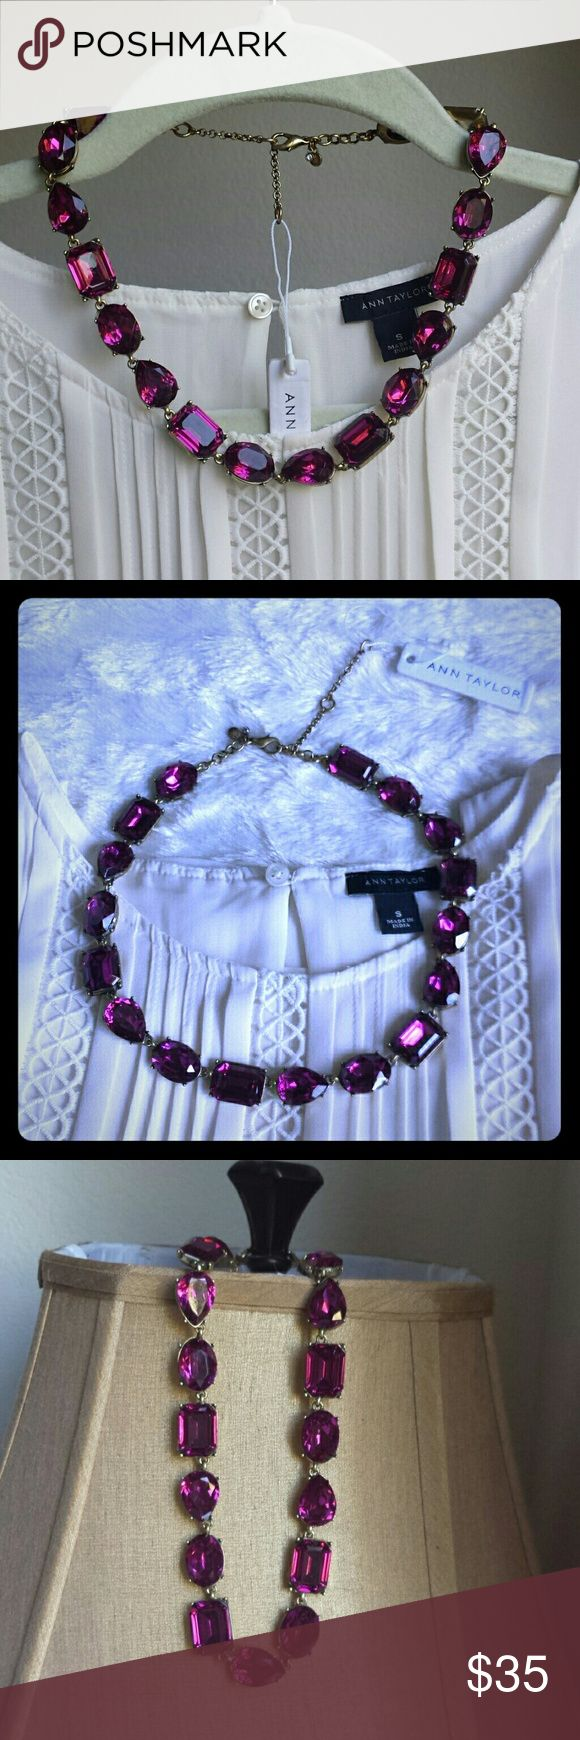 "NWT Ann Taylor Crystal Statement Necklace Ann Taylor Hot Pink Crystal/Gemstone Statement Necklace  Beautiful hot pink gemstones in different shapes (teardrop, oval, square) are linked together on a gold tone plated chain. Definitely will make a statement! Lovely piece, one of my favorites. But had too many of the AT jewelries, so letting it go...   New with tag, never worn! A stunning piece, don't miss it if you like it!   Length: 17""+2.5"" extender Ann Taylor Jewelry Necklaces"